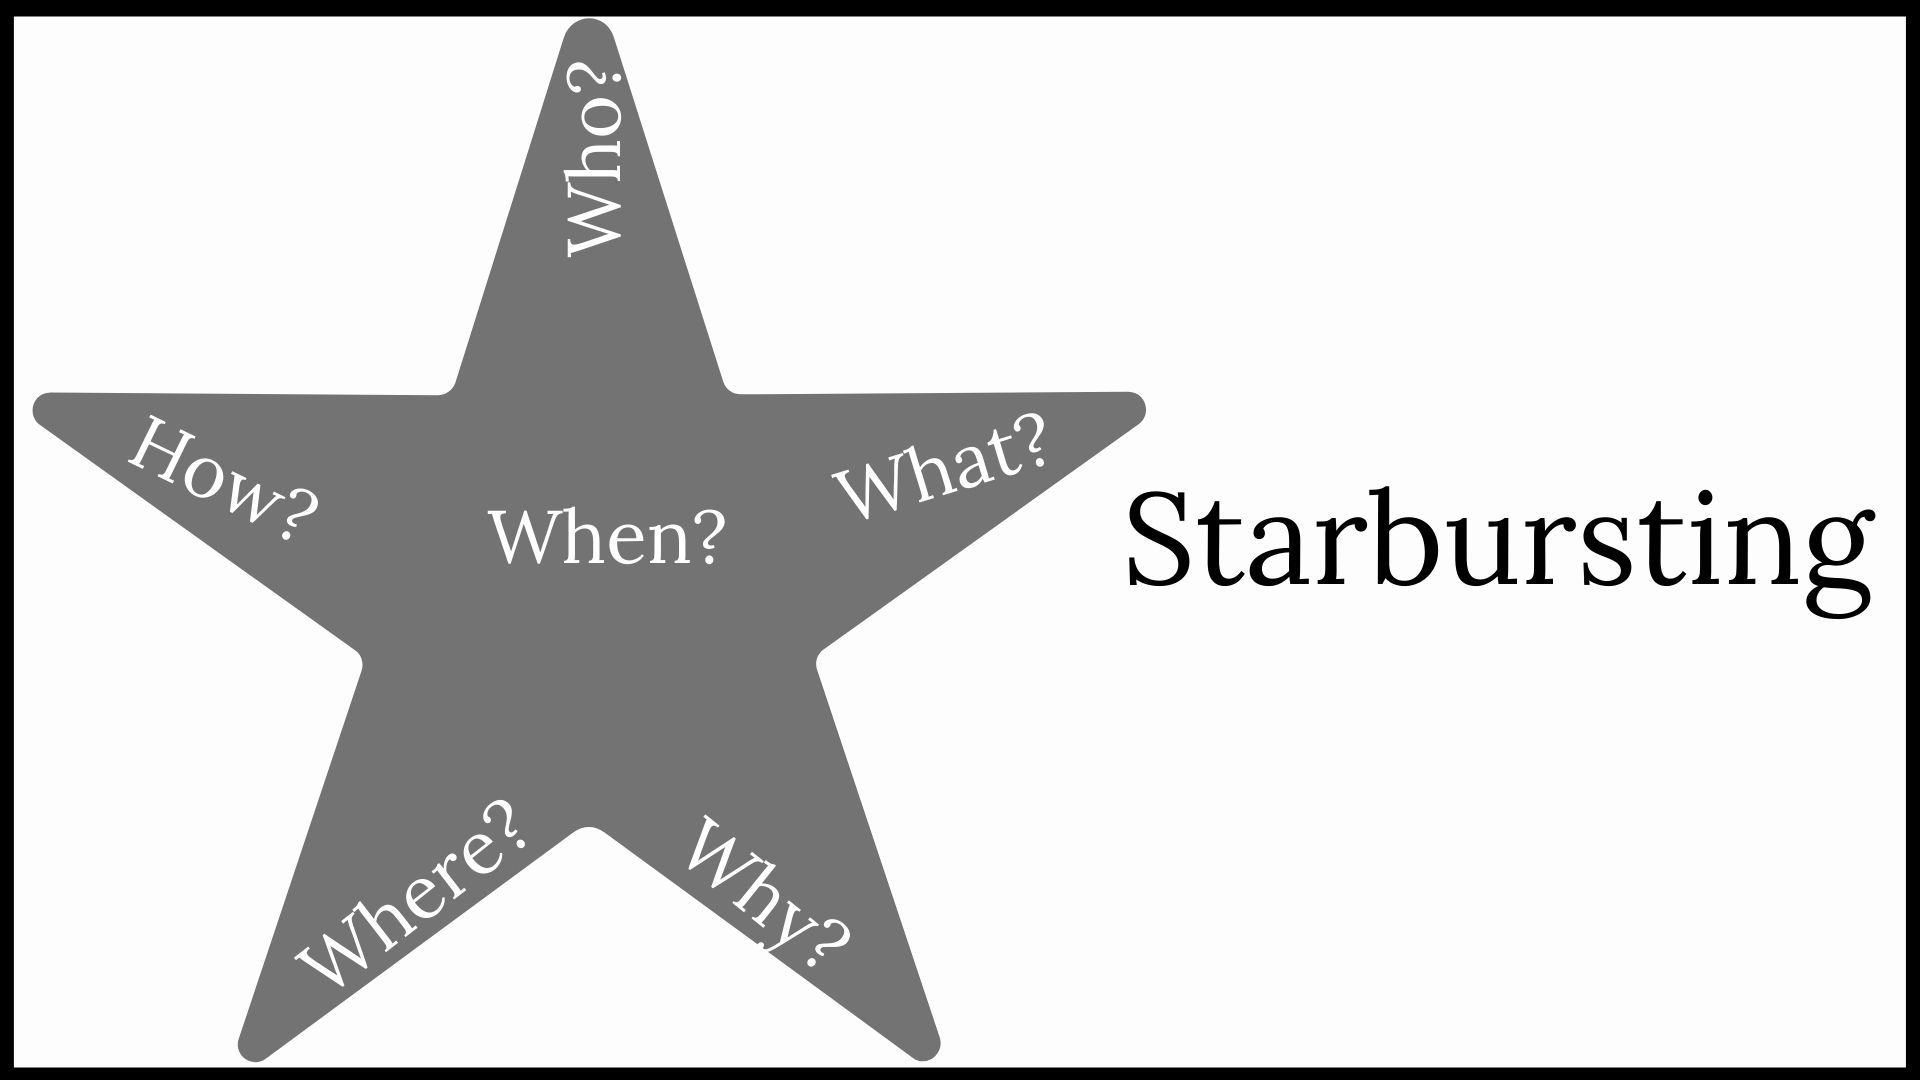 How does Starbursting help different organizations